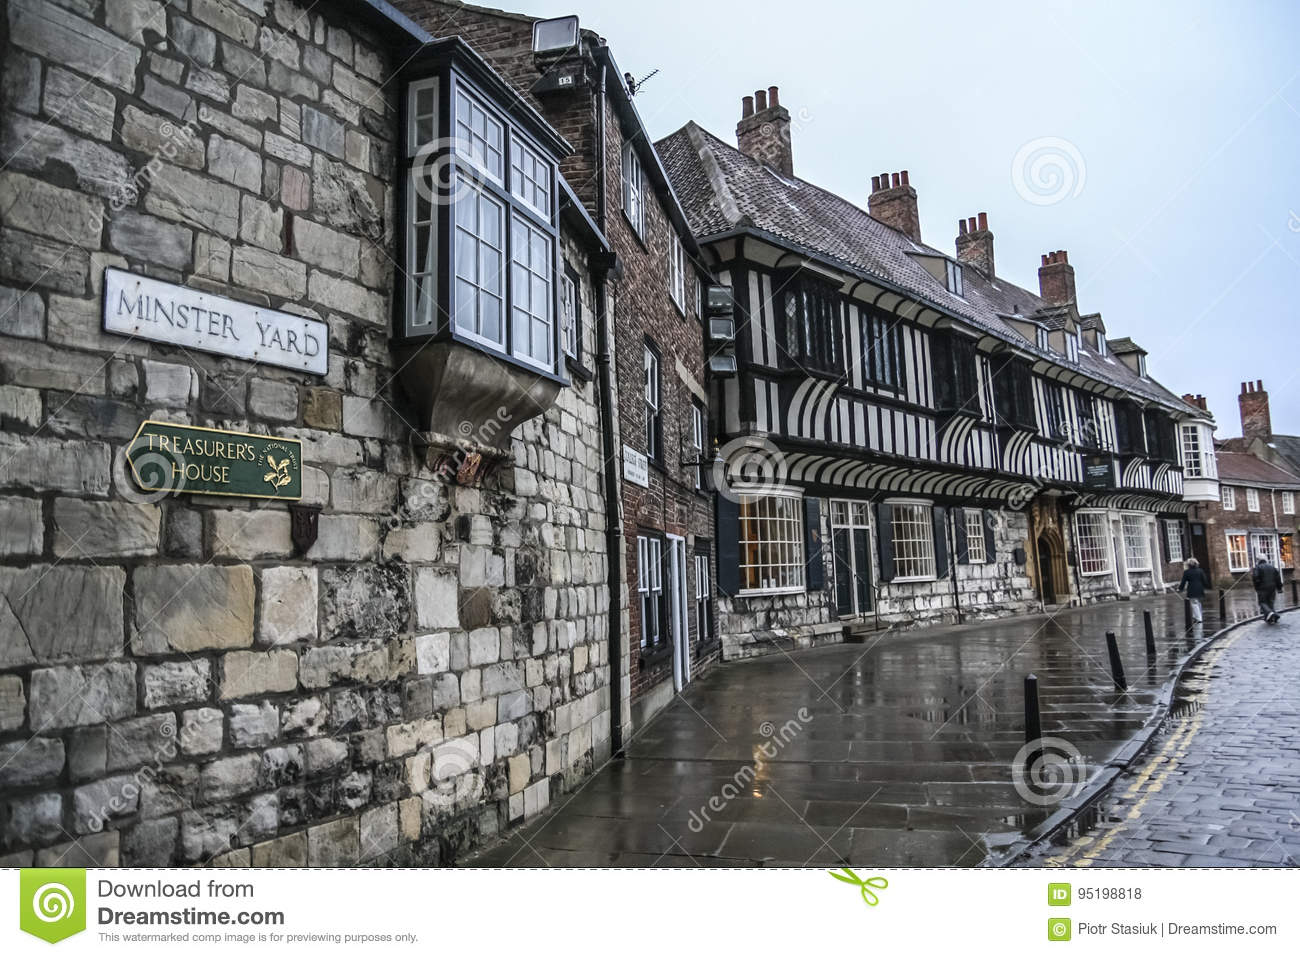 York/England - June 12, 2011: Minster Yard in the City of York